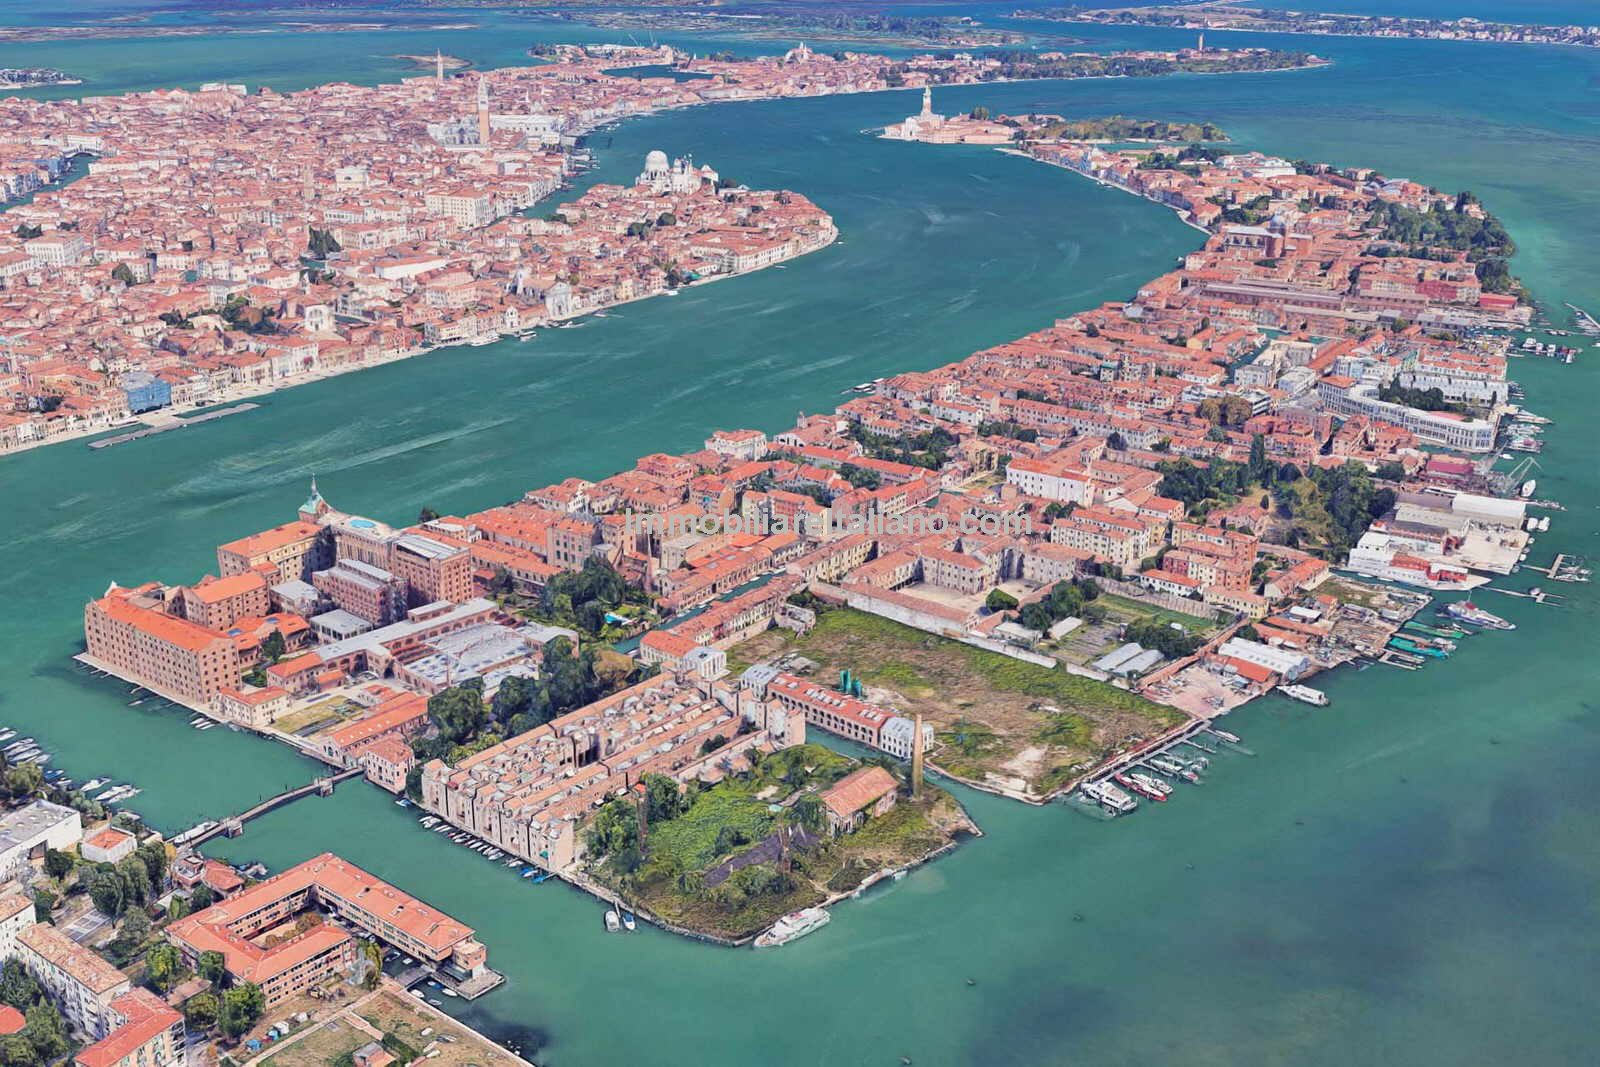 Aerial view of Venice property